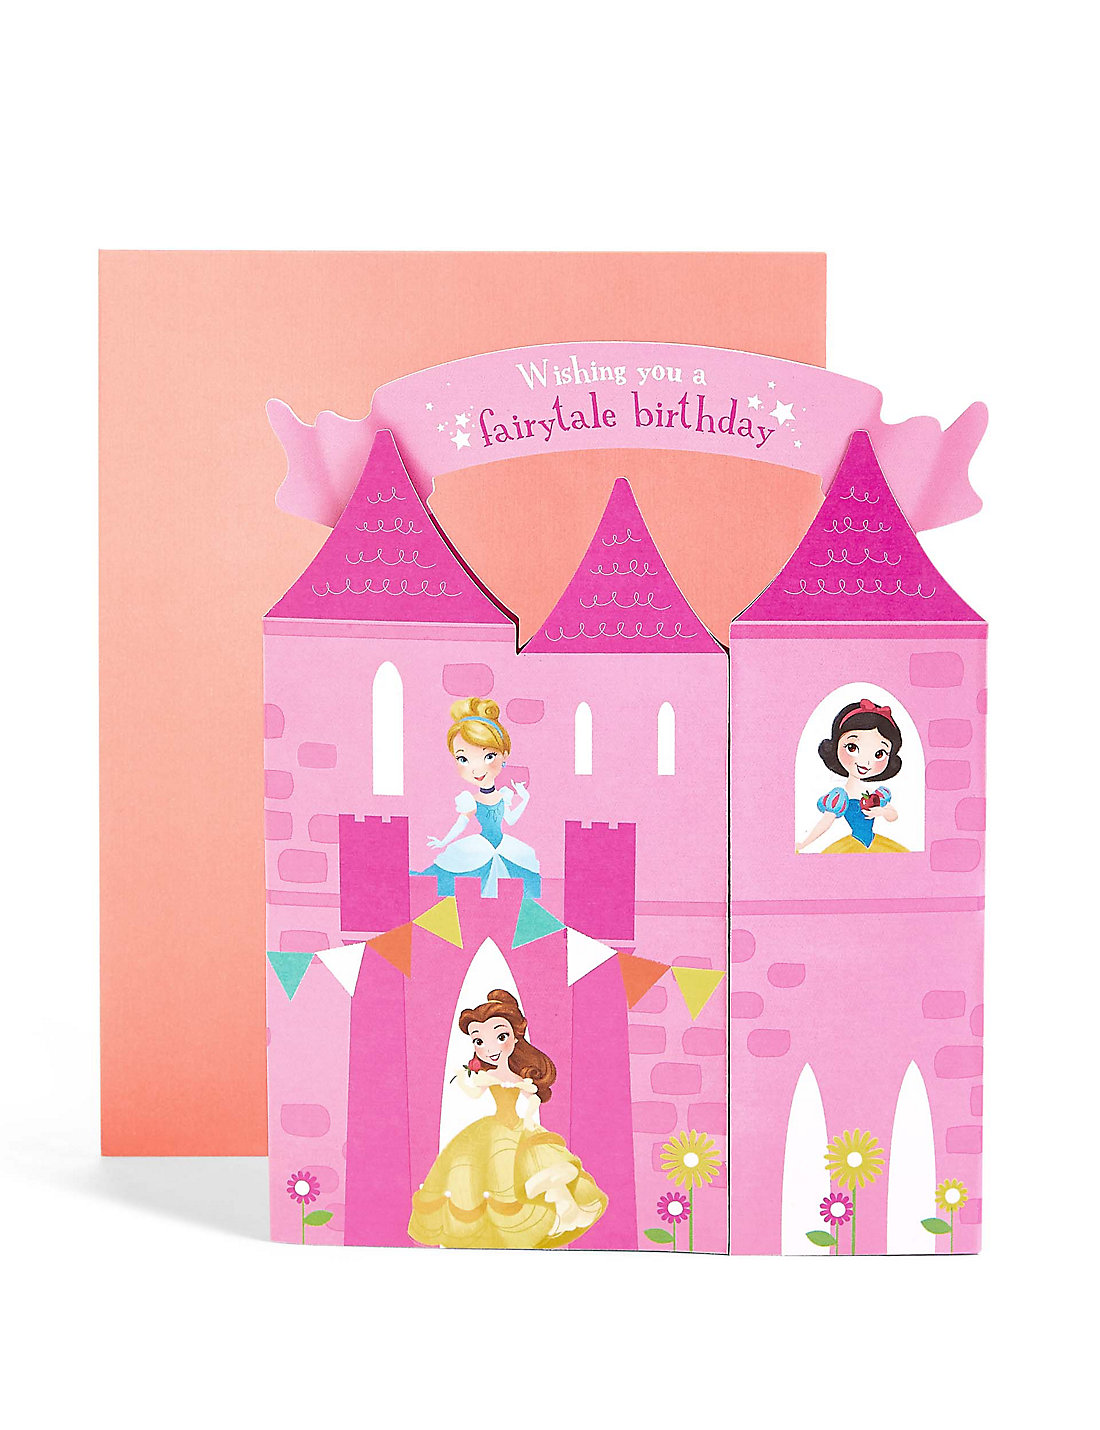 Kids cards birthday cards greeting cards for children ms pop up disney princesstrade castle scene birthday card kristyandbryce Image collections